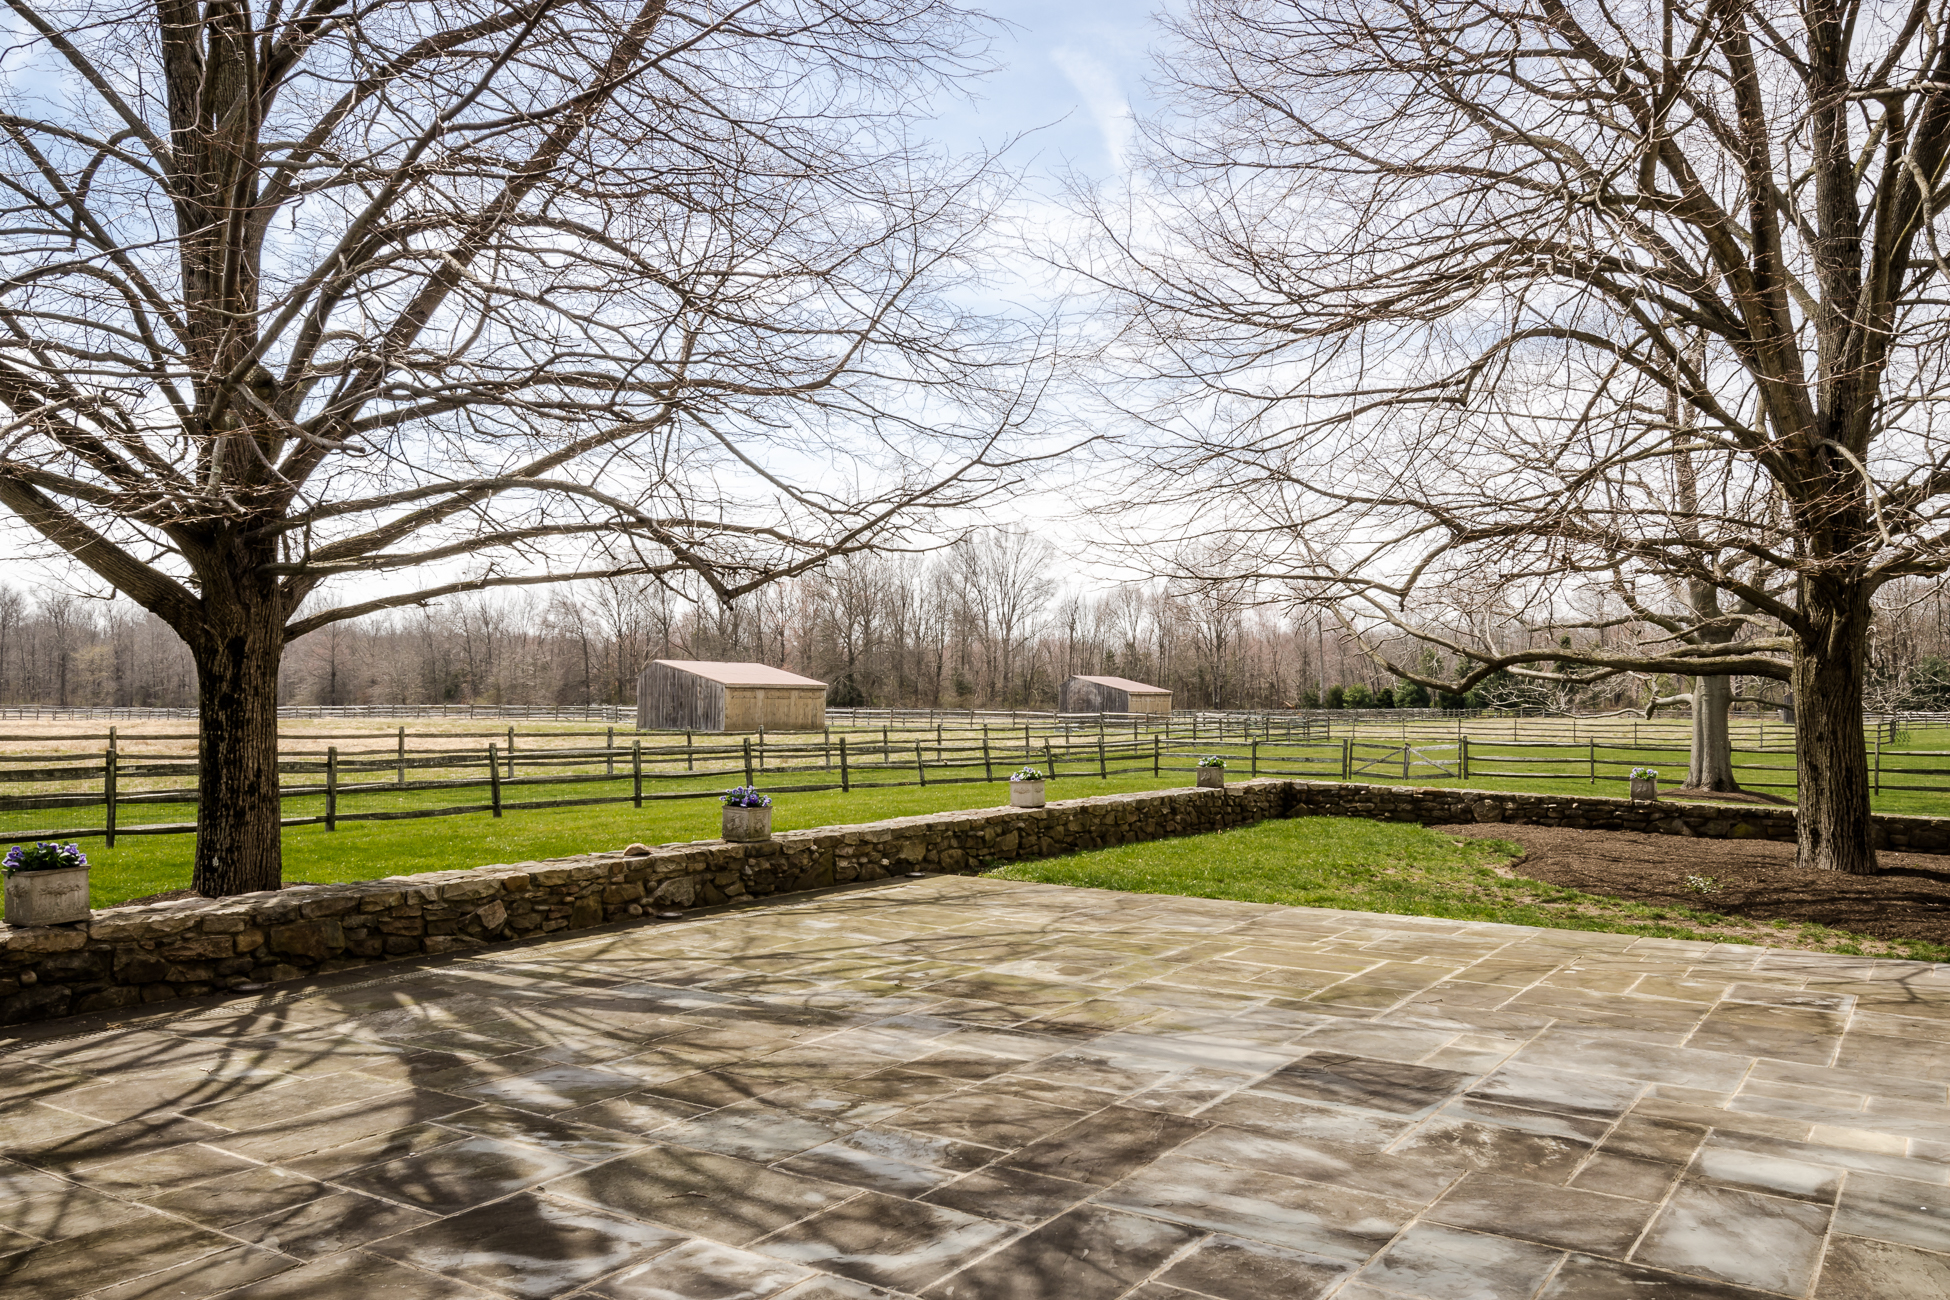 Additional photo for property listing at Rare Opportunity - 101 Acres within Minutes of Princeton 126 Moores Mill Mount Rose Road Hopewell, New Jersey 08525 United States